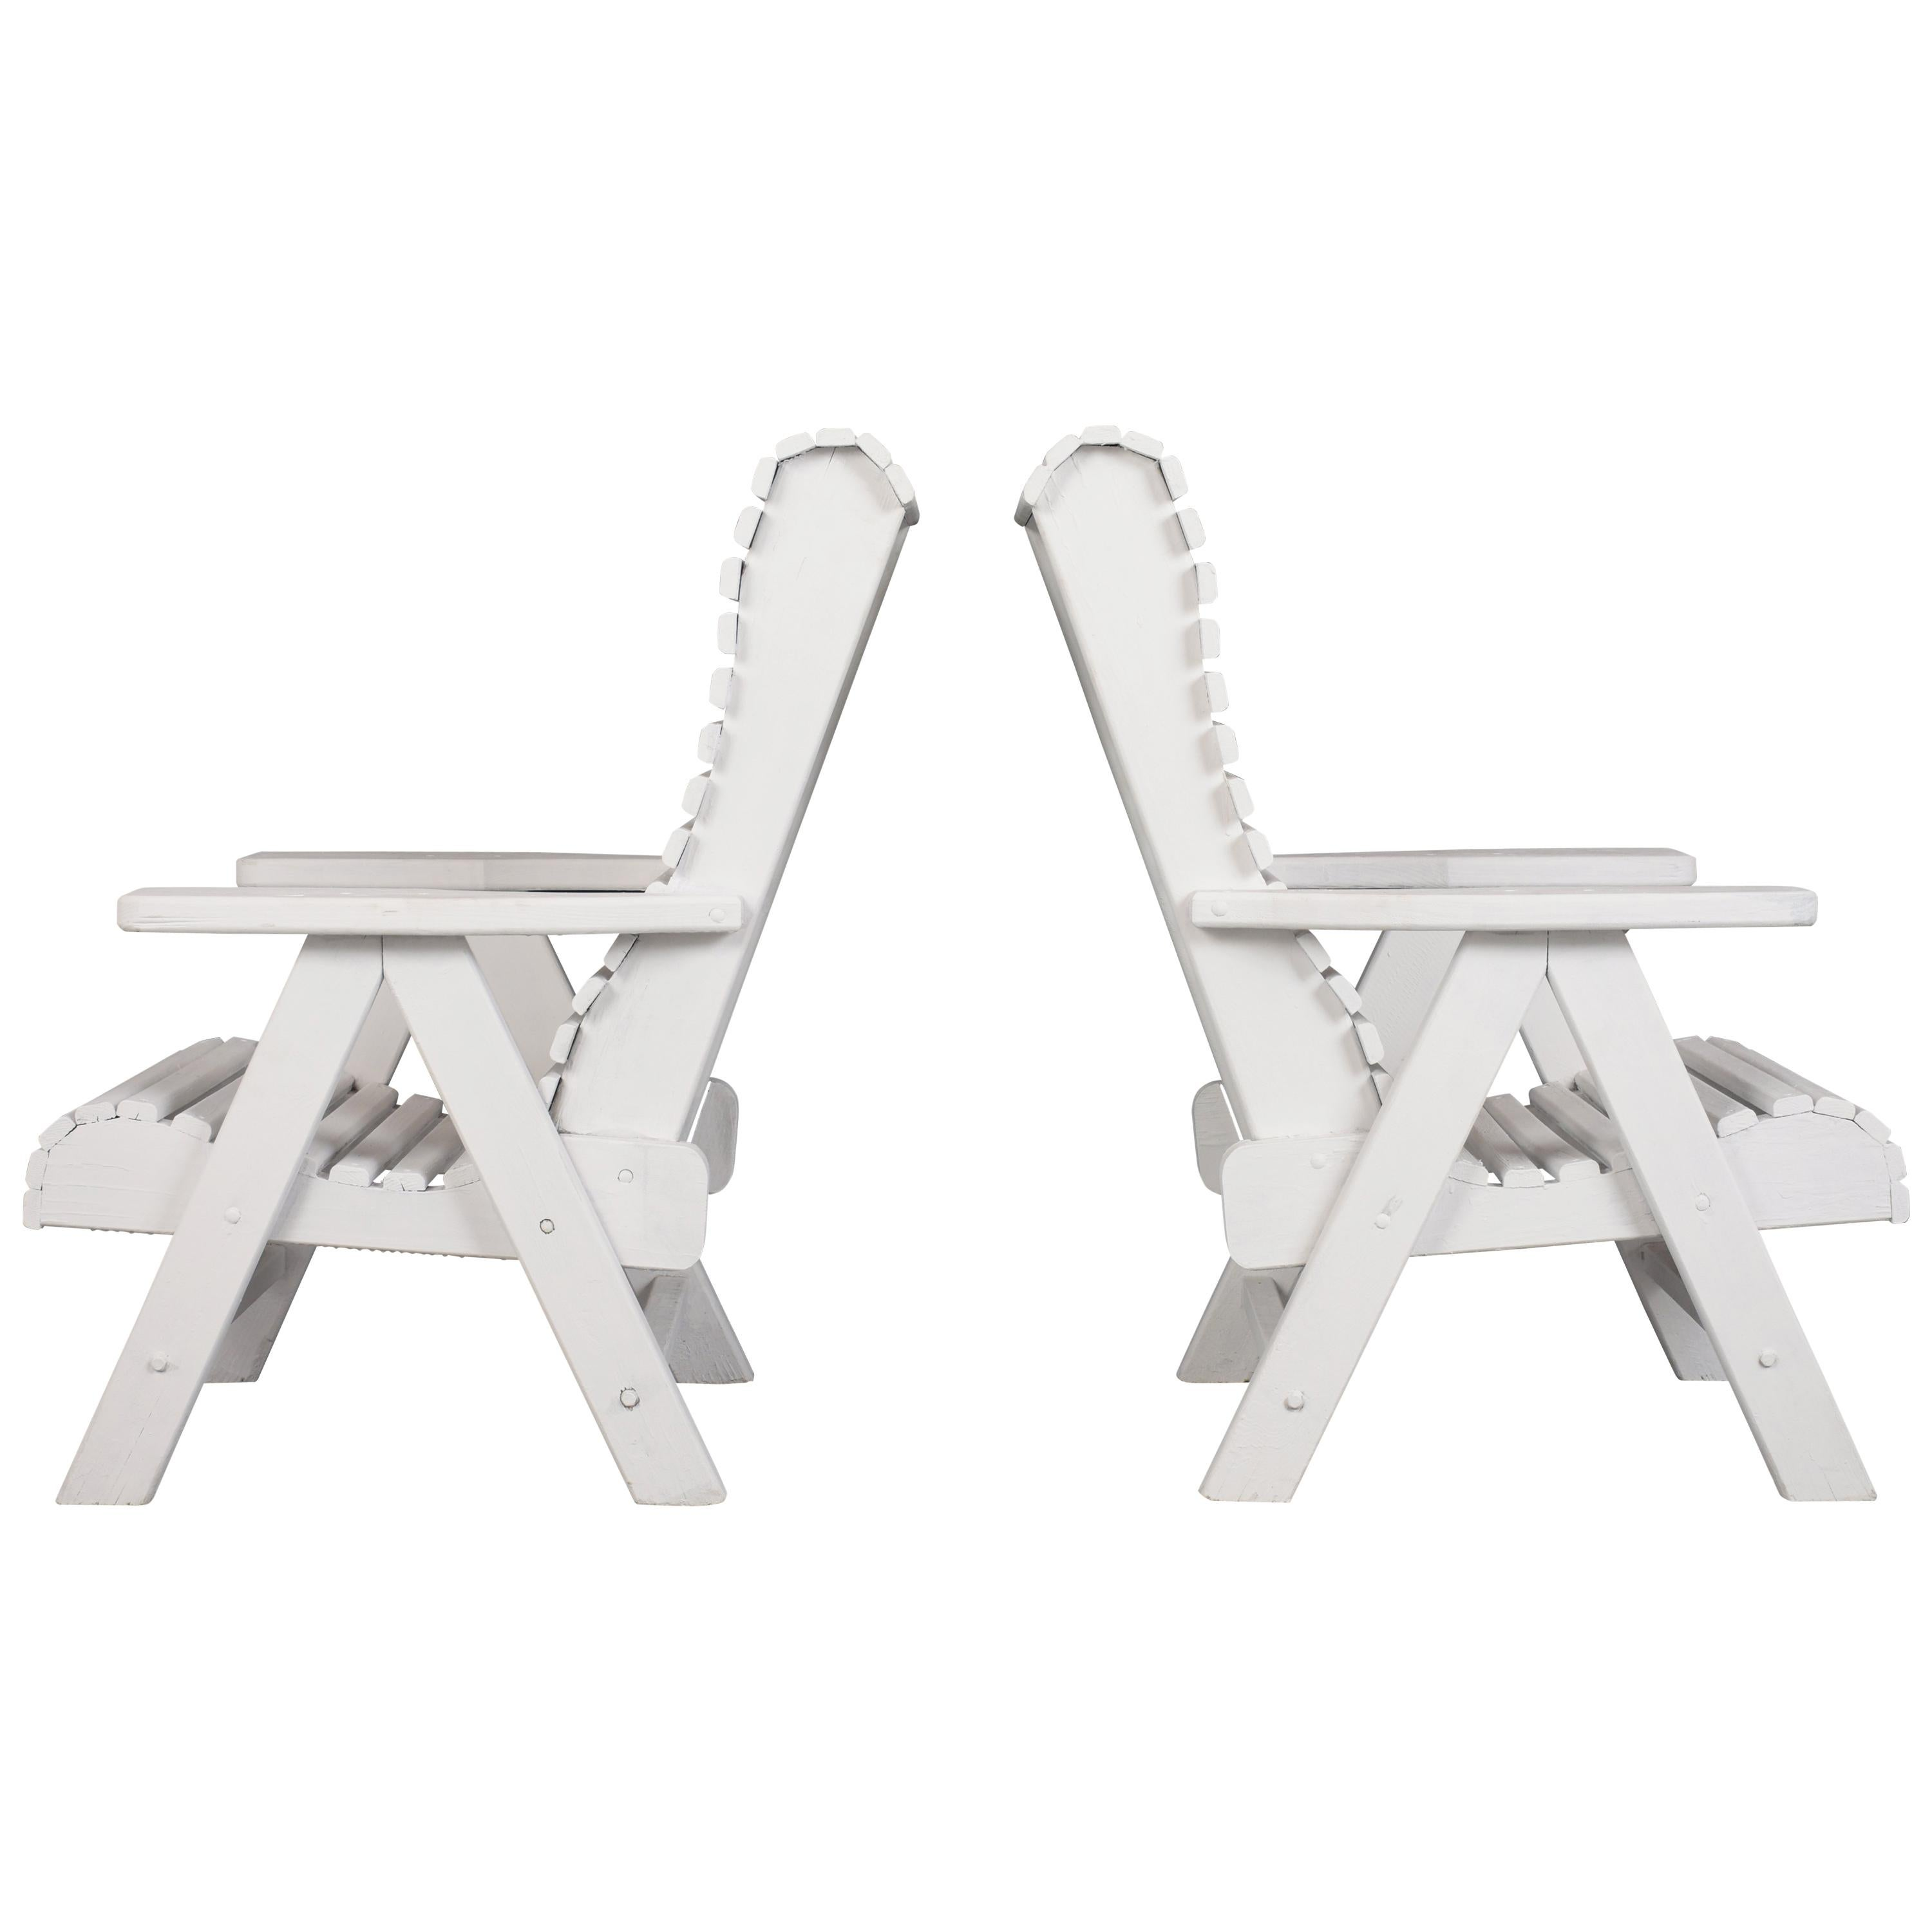 Pair of Patio Lounge Chairs